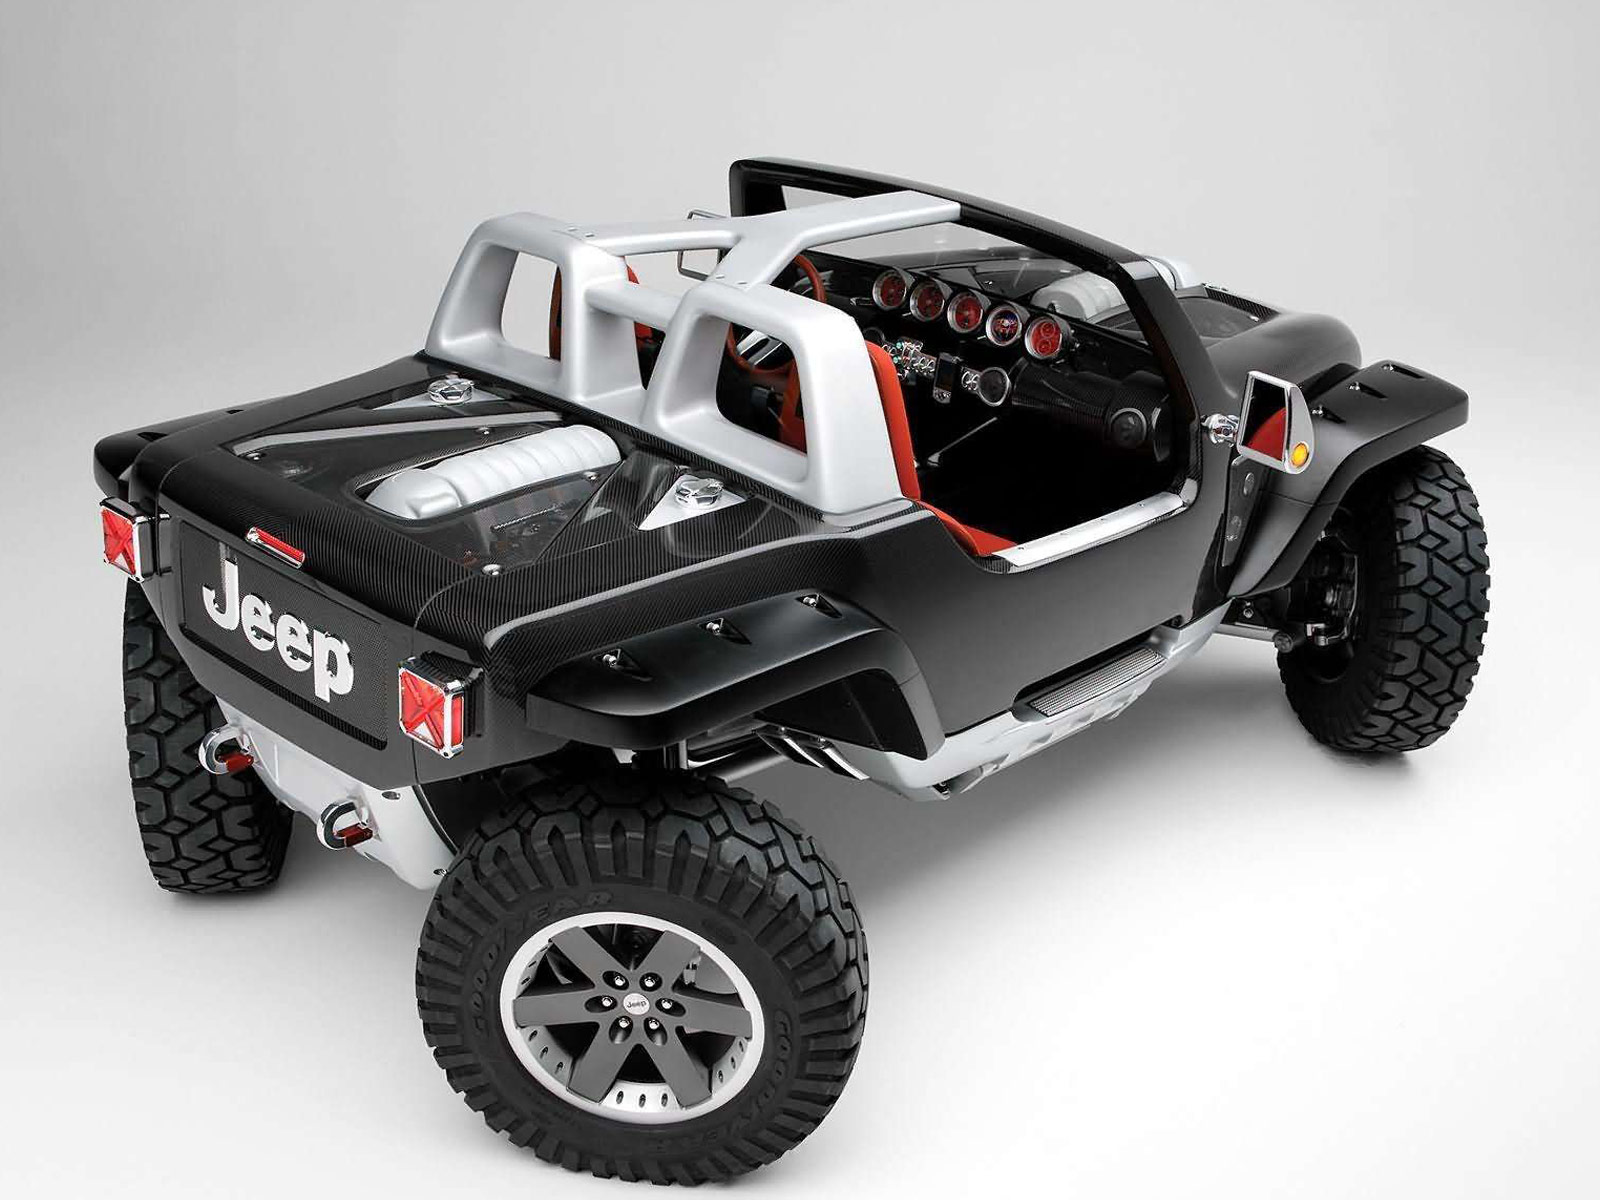 2005 hurricane concept gambar mobil jeep for Benetton 4 wheel steering